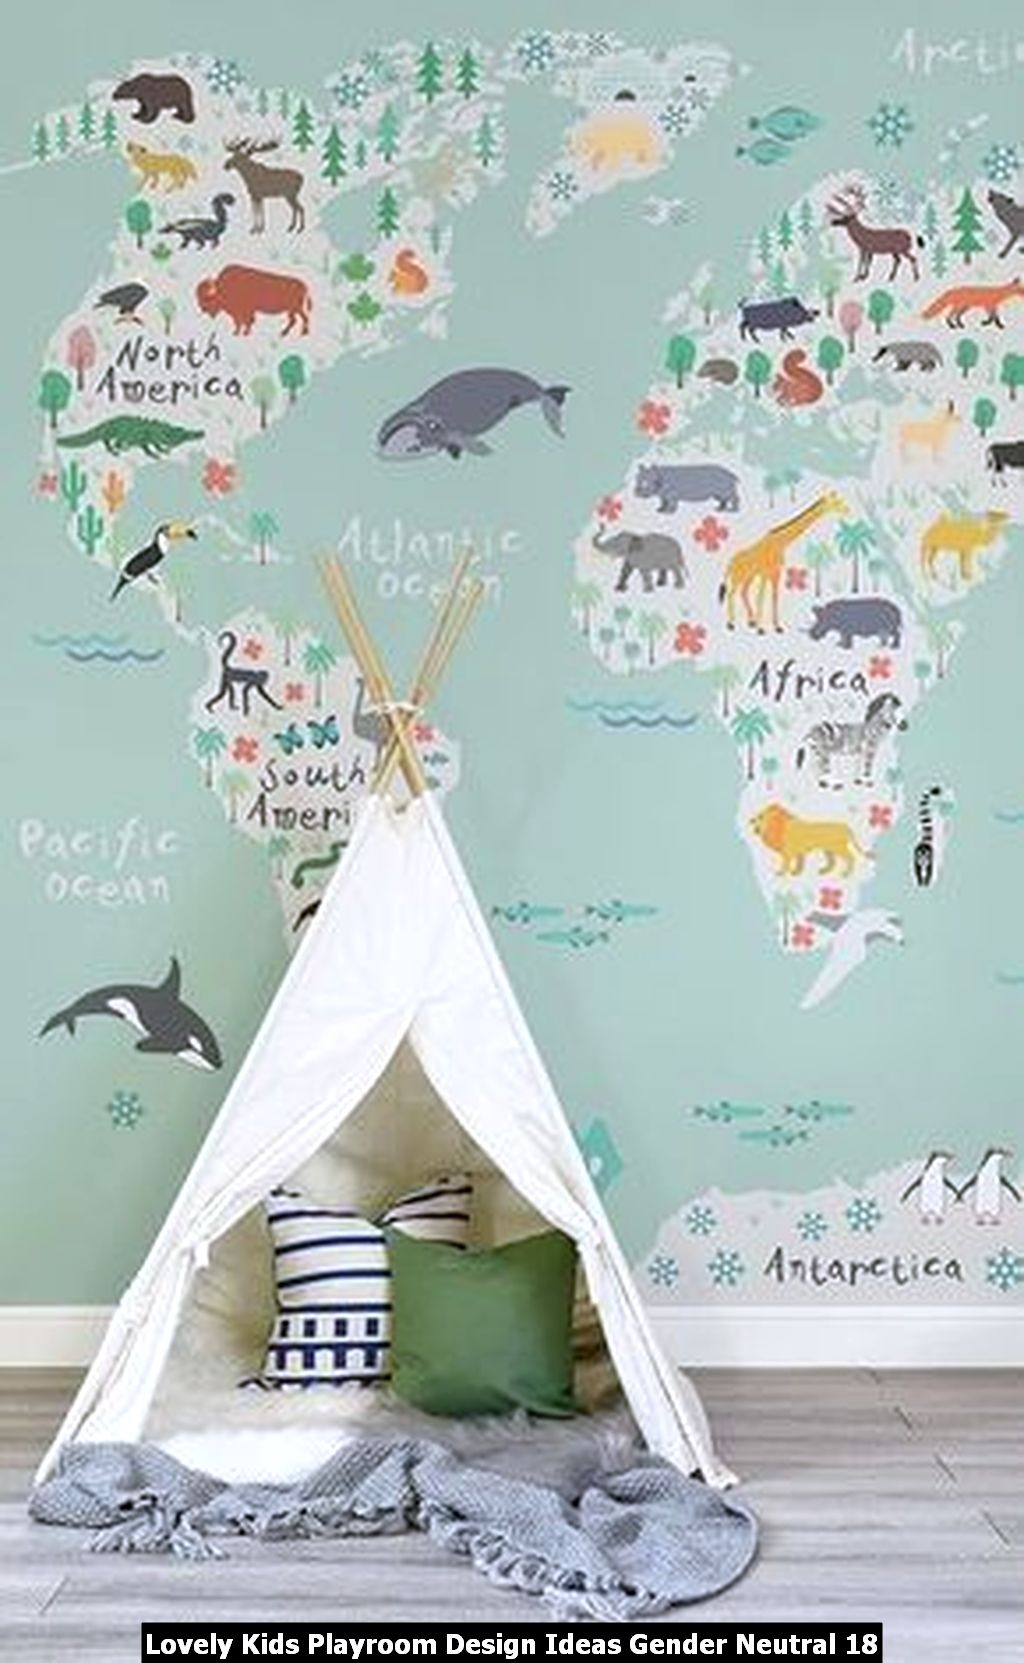 Lovely Kids Playroom Design Ideas Gender Neutral 18